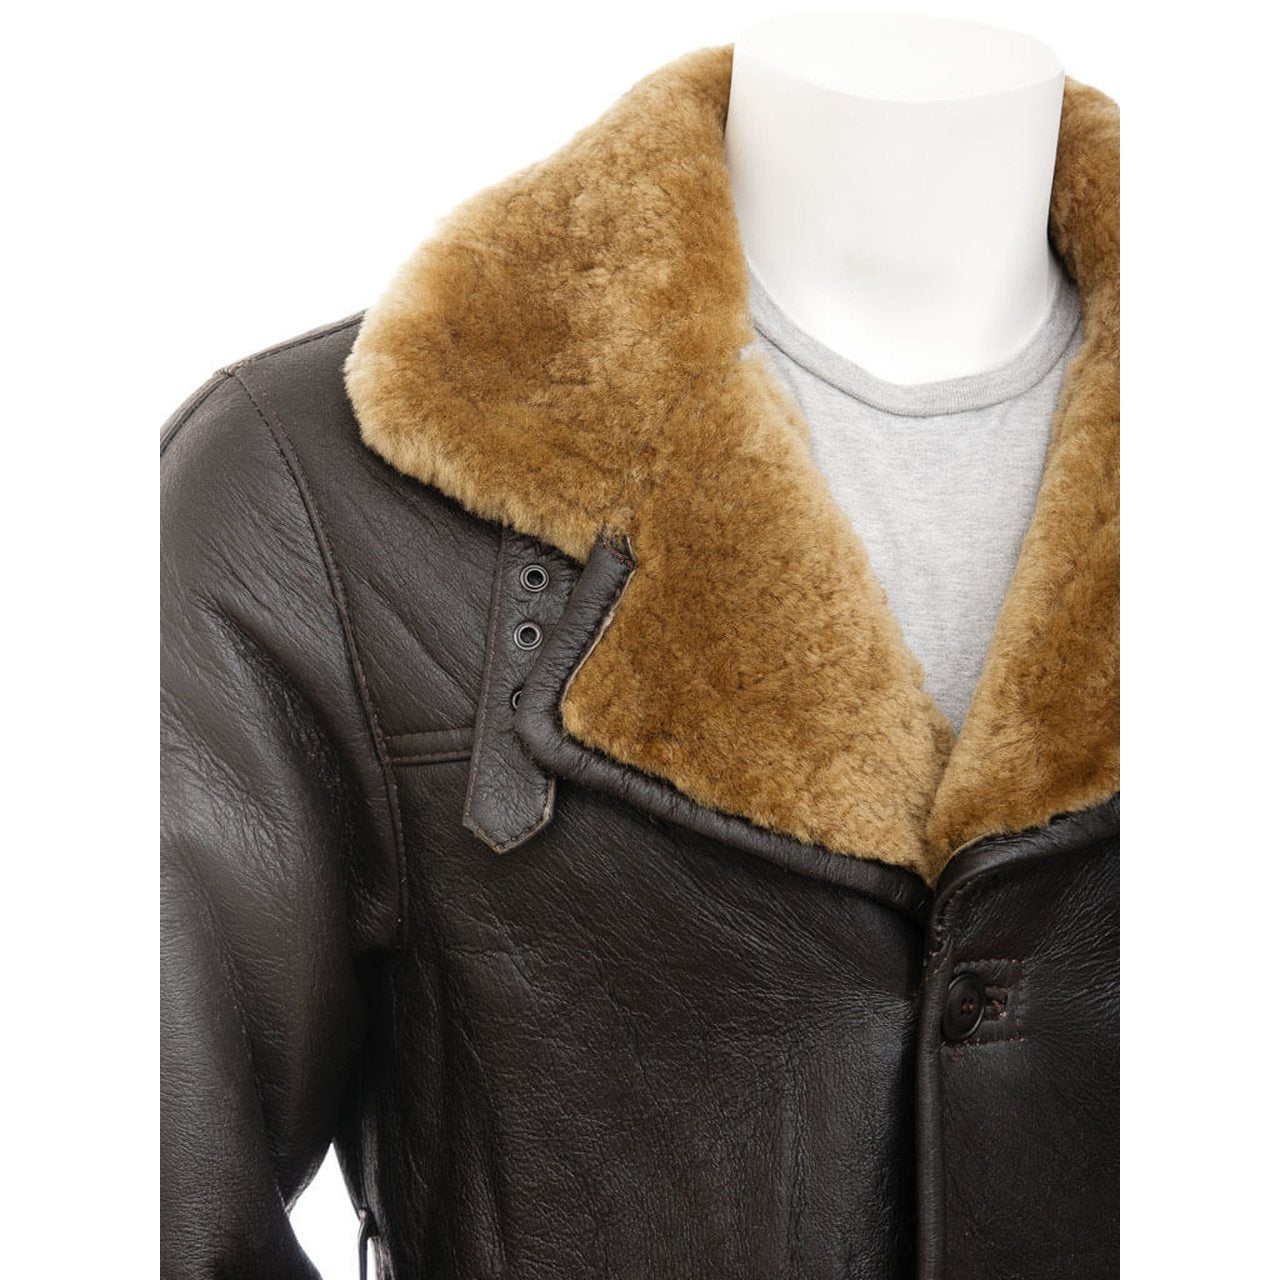 Dark Brown Shearling Leather Coat Men - Leather Jacket